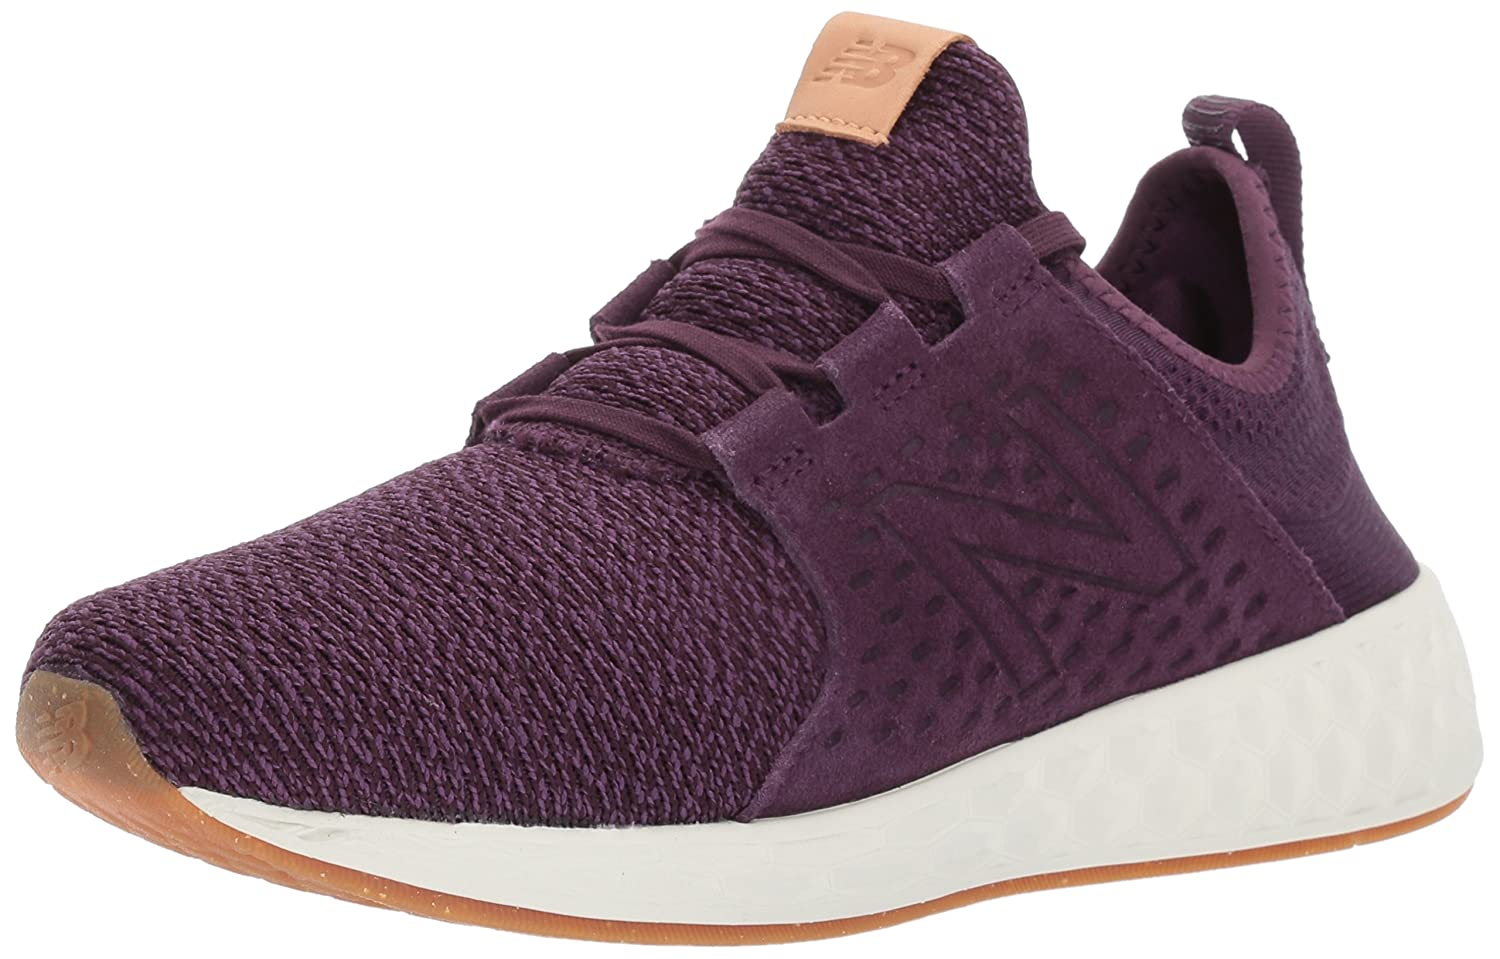 New Balance Women's Fresh Foam Cruz V1 Running Shoe B01M0OO8IE 8.5 B(M) US|Aubergine/Sea Salt